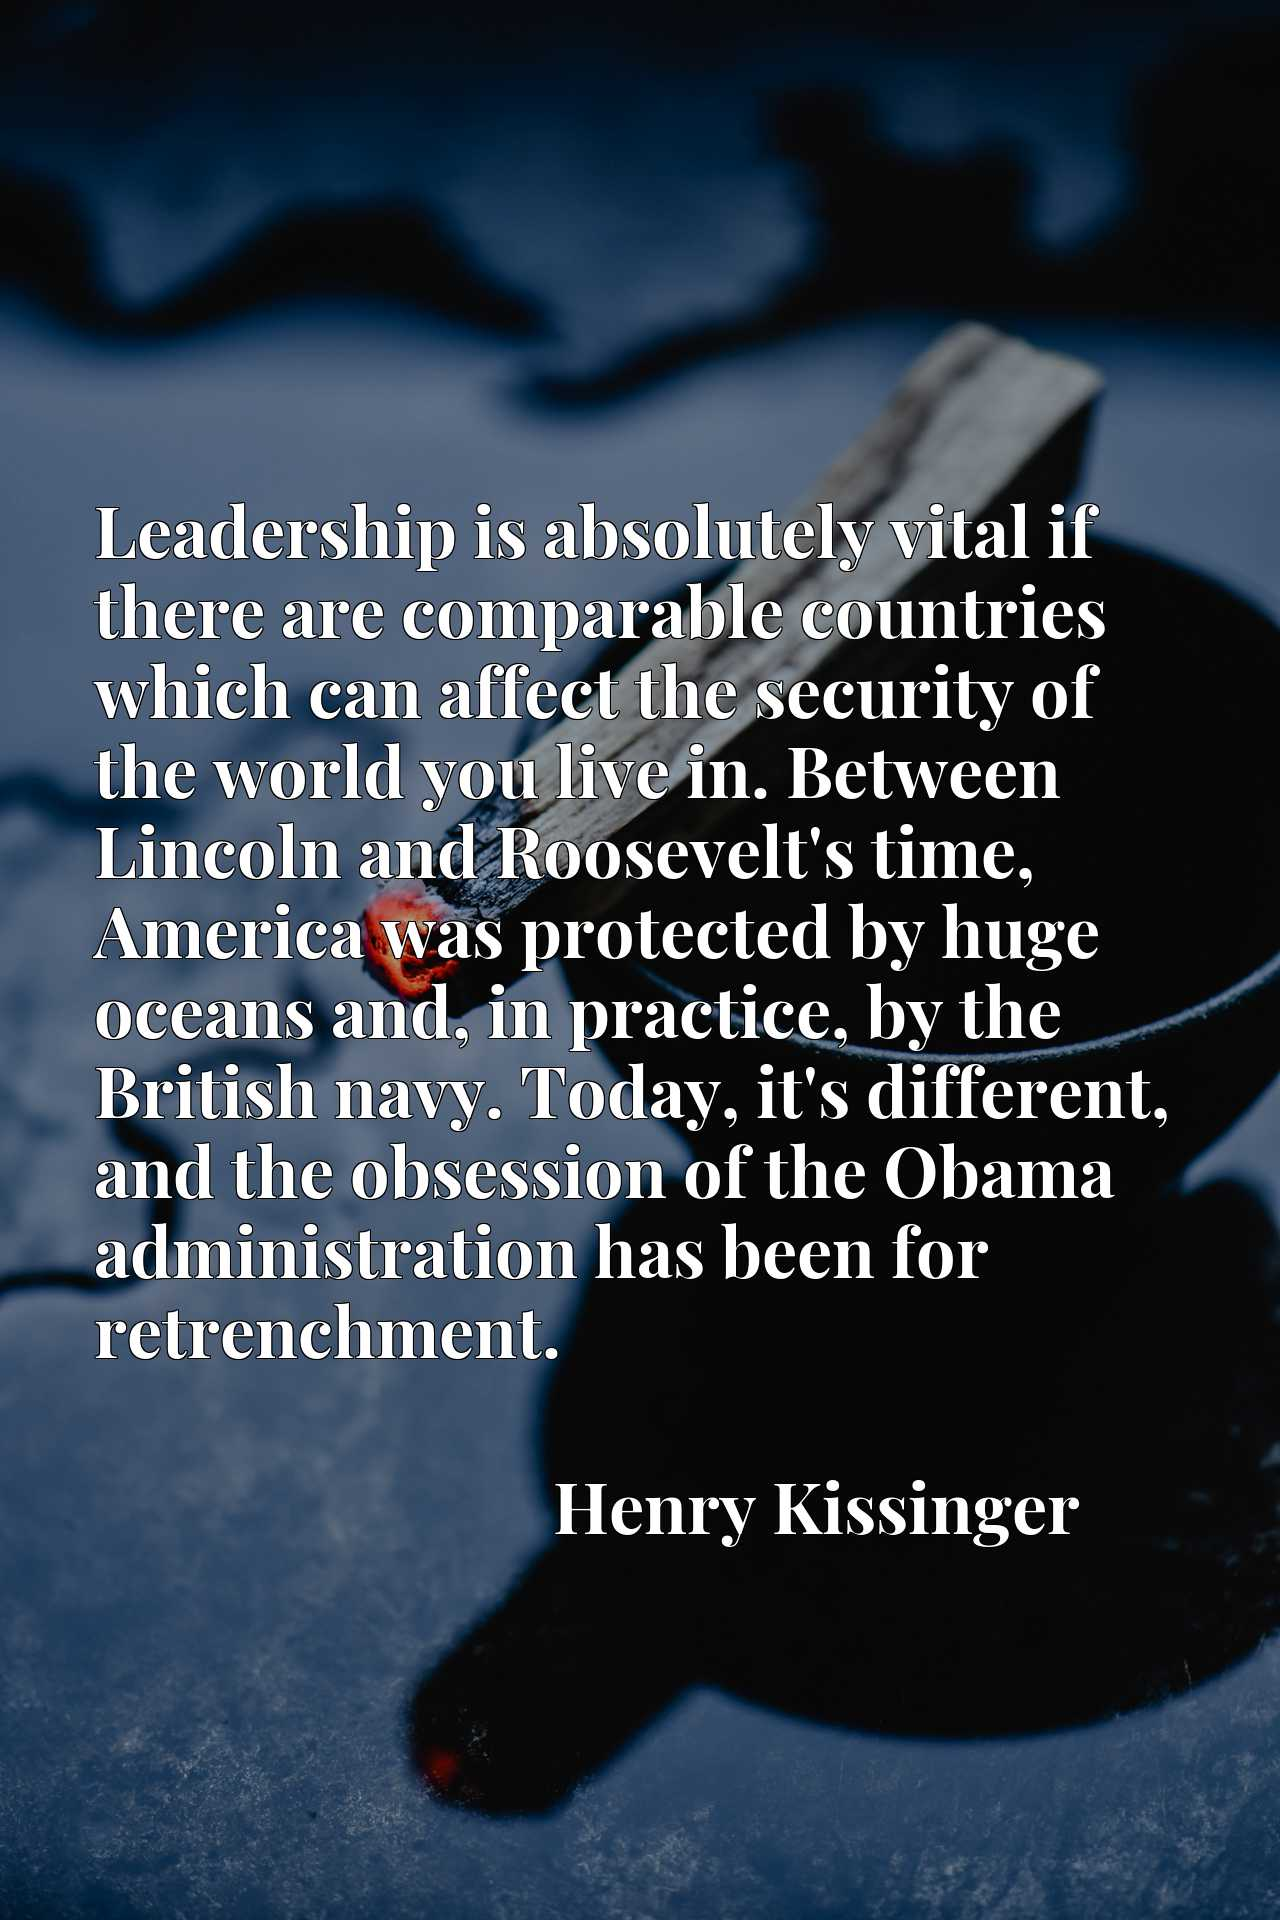 Quote Picture :Leadership is absolutely vital if there are comparable countries which can affect the security of the world you live in. Between Lincoln and Roosevelt's time, America was protected by huge oceans and, in practice, by the British navy. Today, it's different, and the obsession of the Obama administration has been for retrenchment.